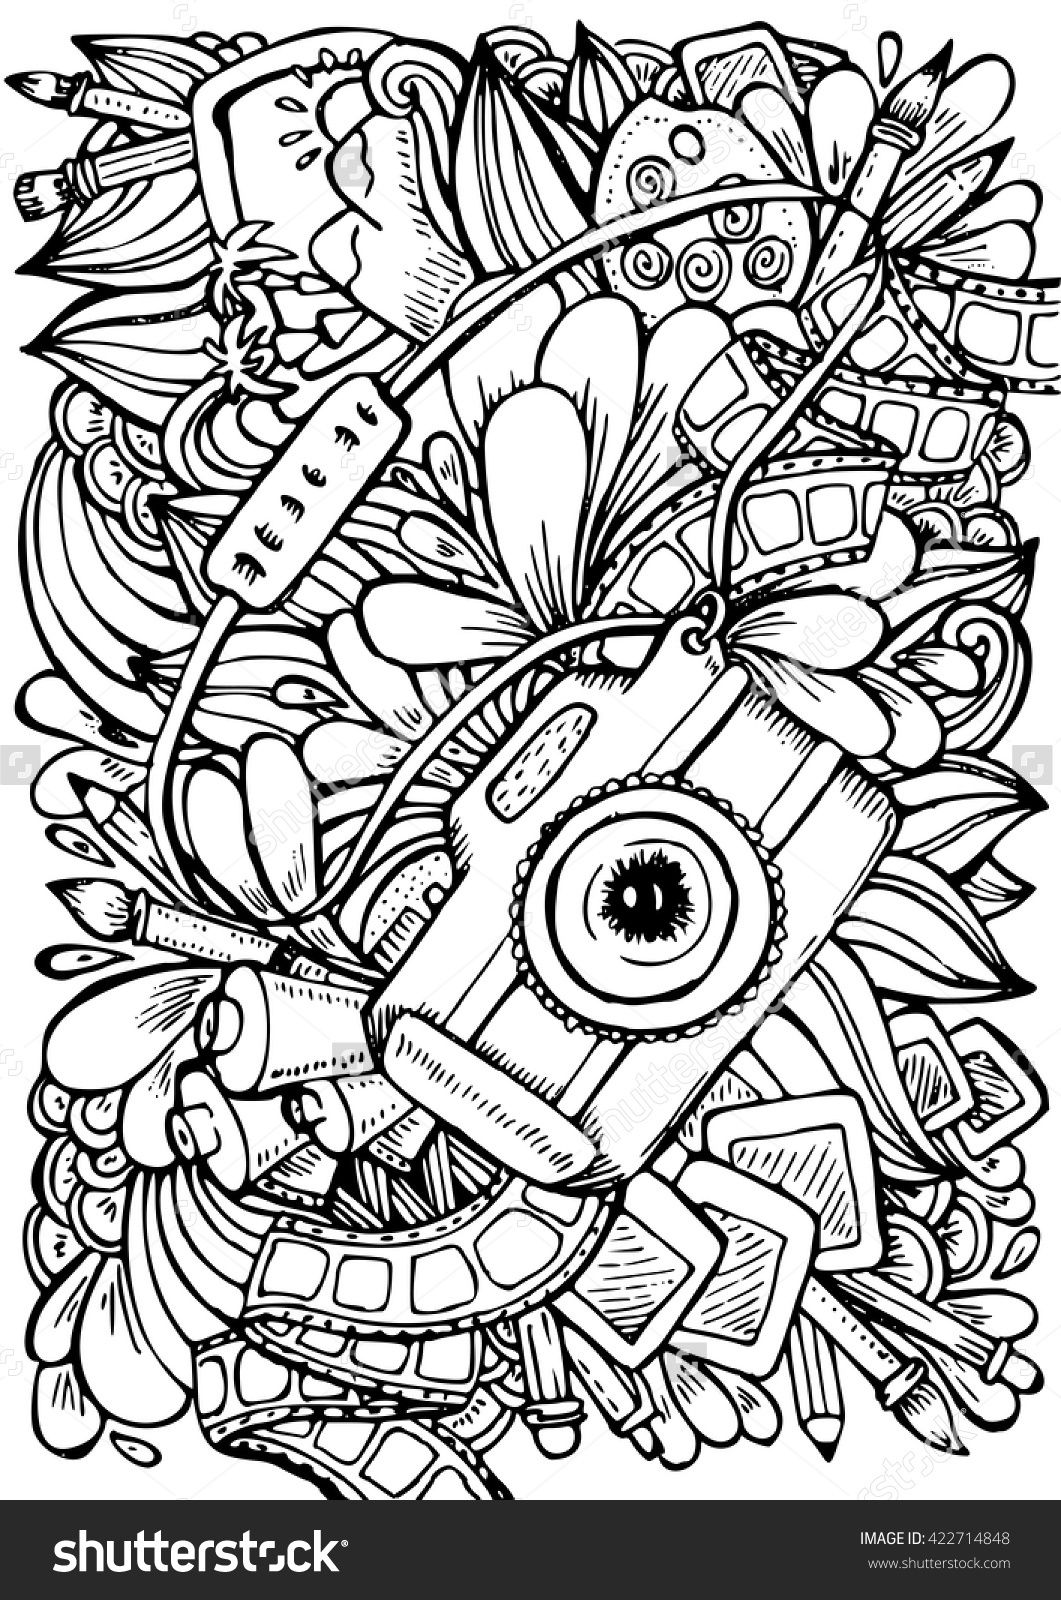 Anti Stress Coloring Book Page For Adult Photo Camera Brush Pencil Ink And Abstract Ornament Sketch By Trace